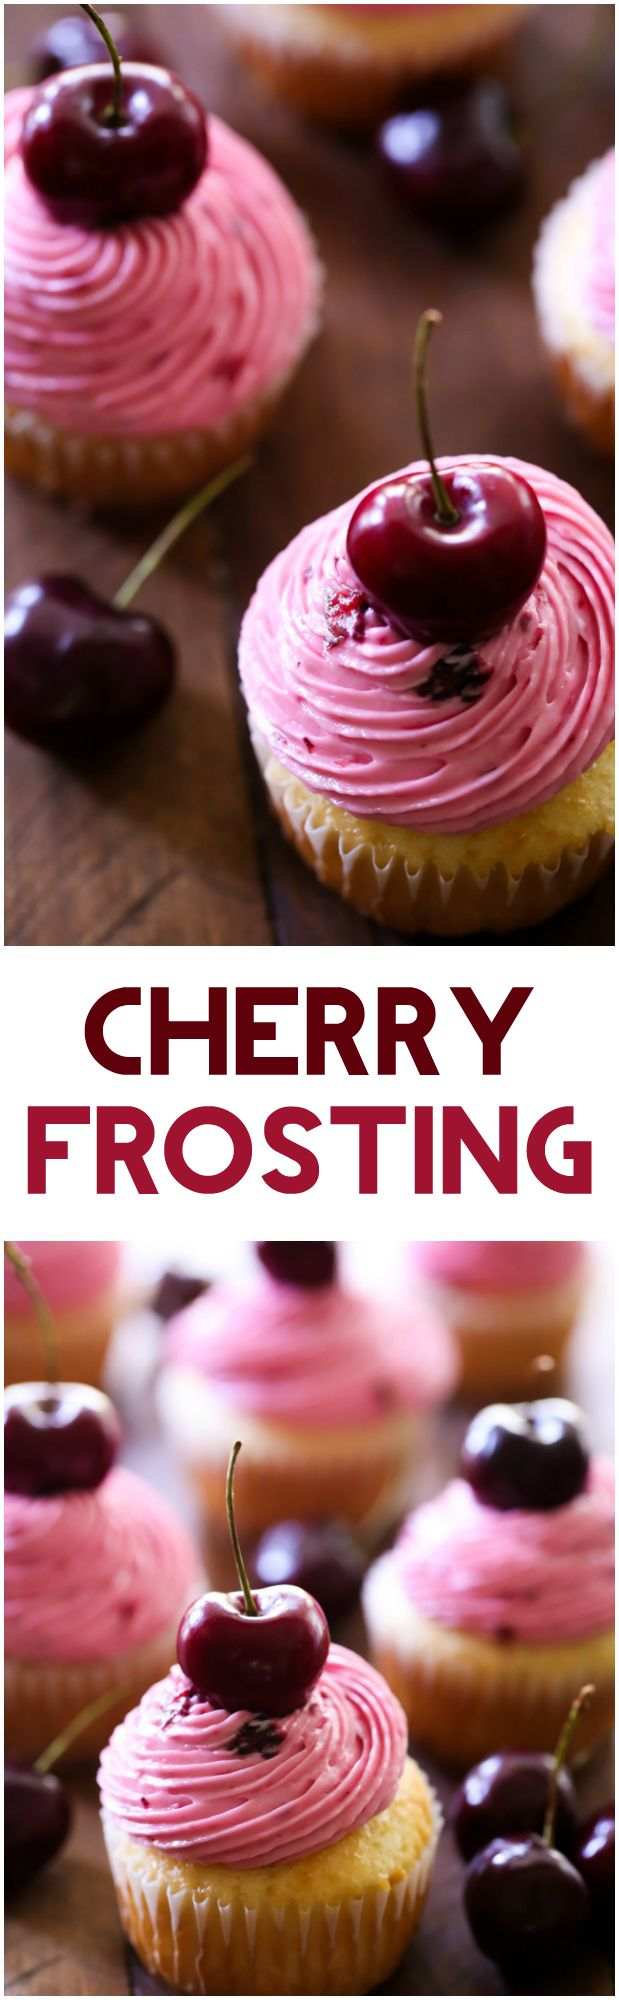 Cherry Frosting... the flavor is absolutely wonderful and is the perfect way to top a cupcake! (chocolate birthday cakes powdered sugar)